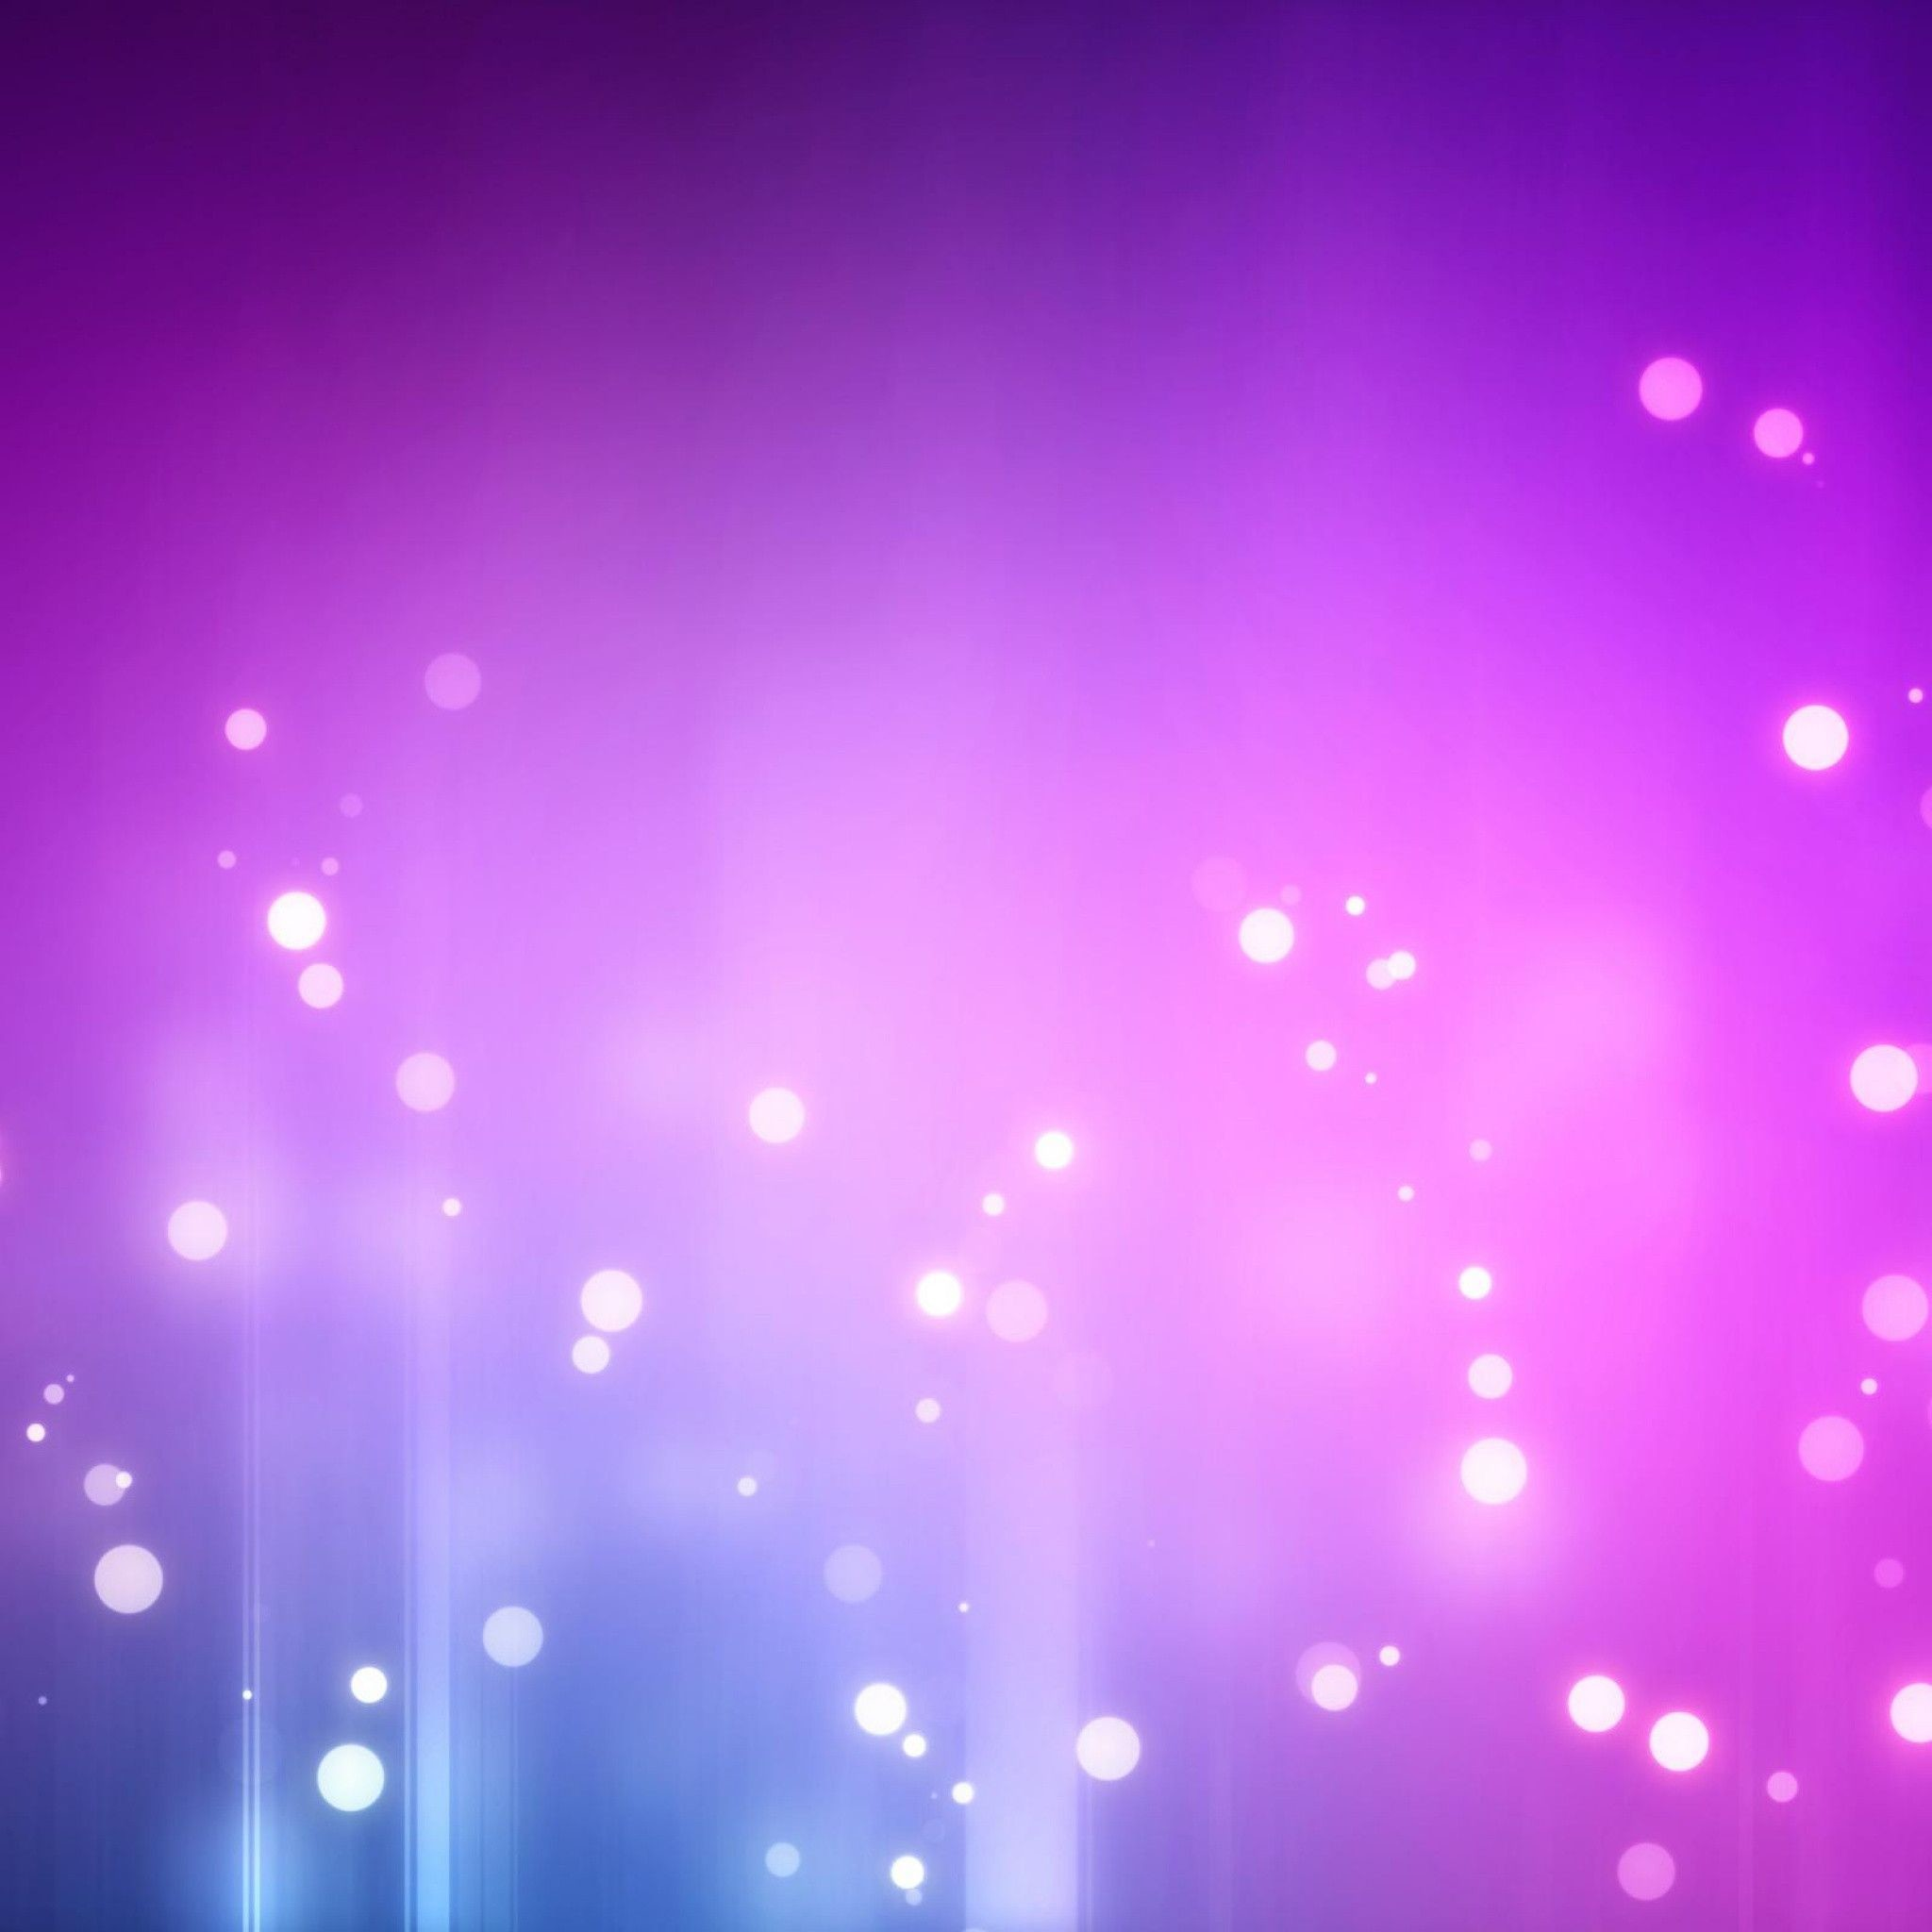 Purple Wallpapers For Phone – Wallpaper Cave